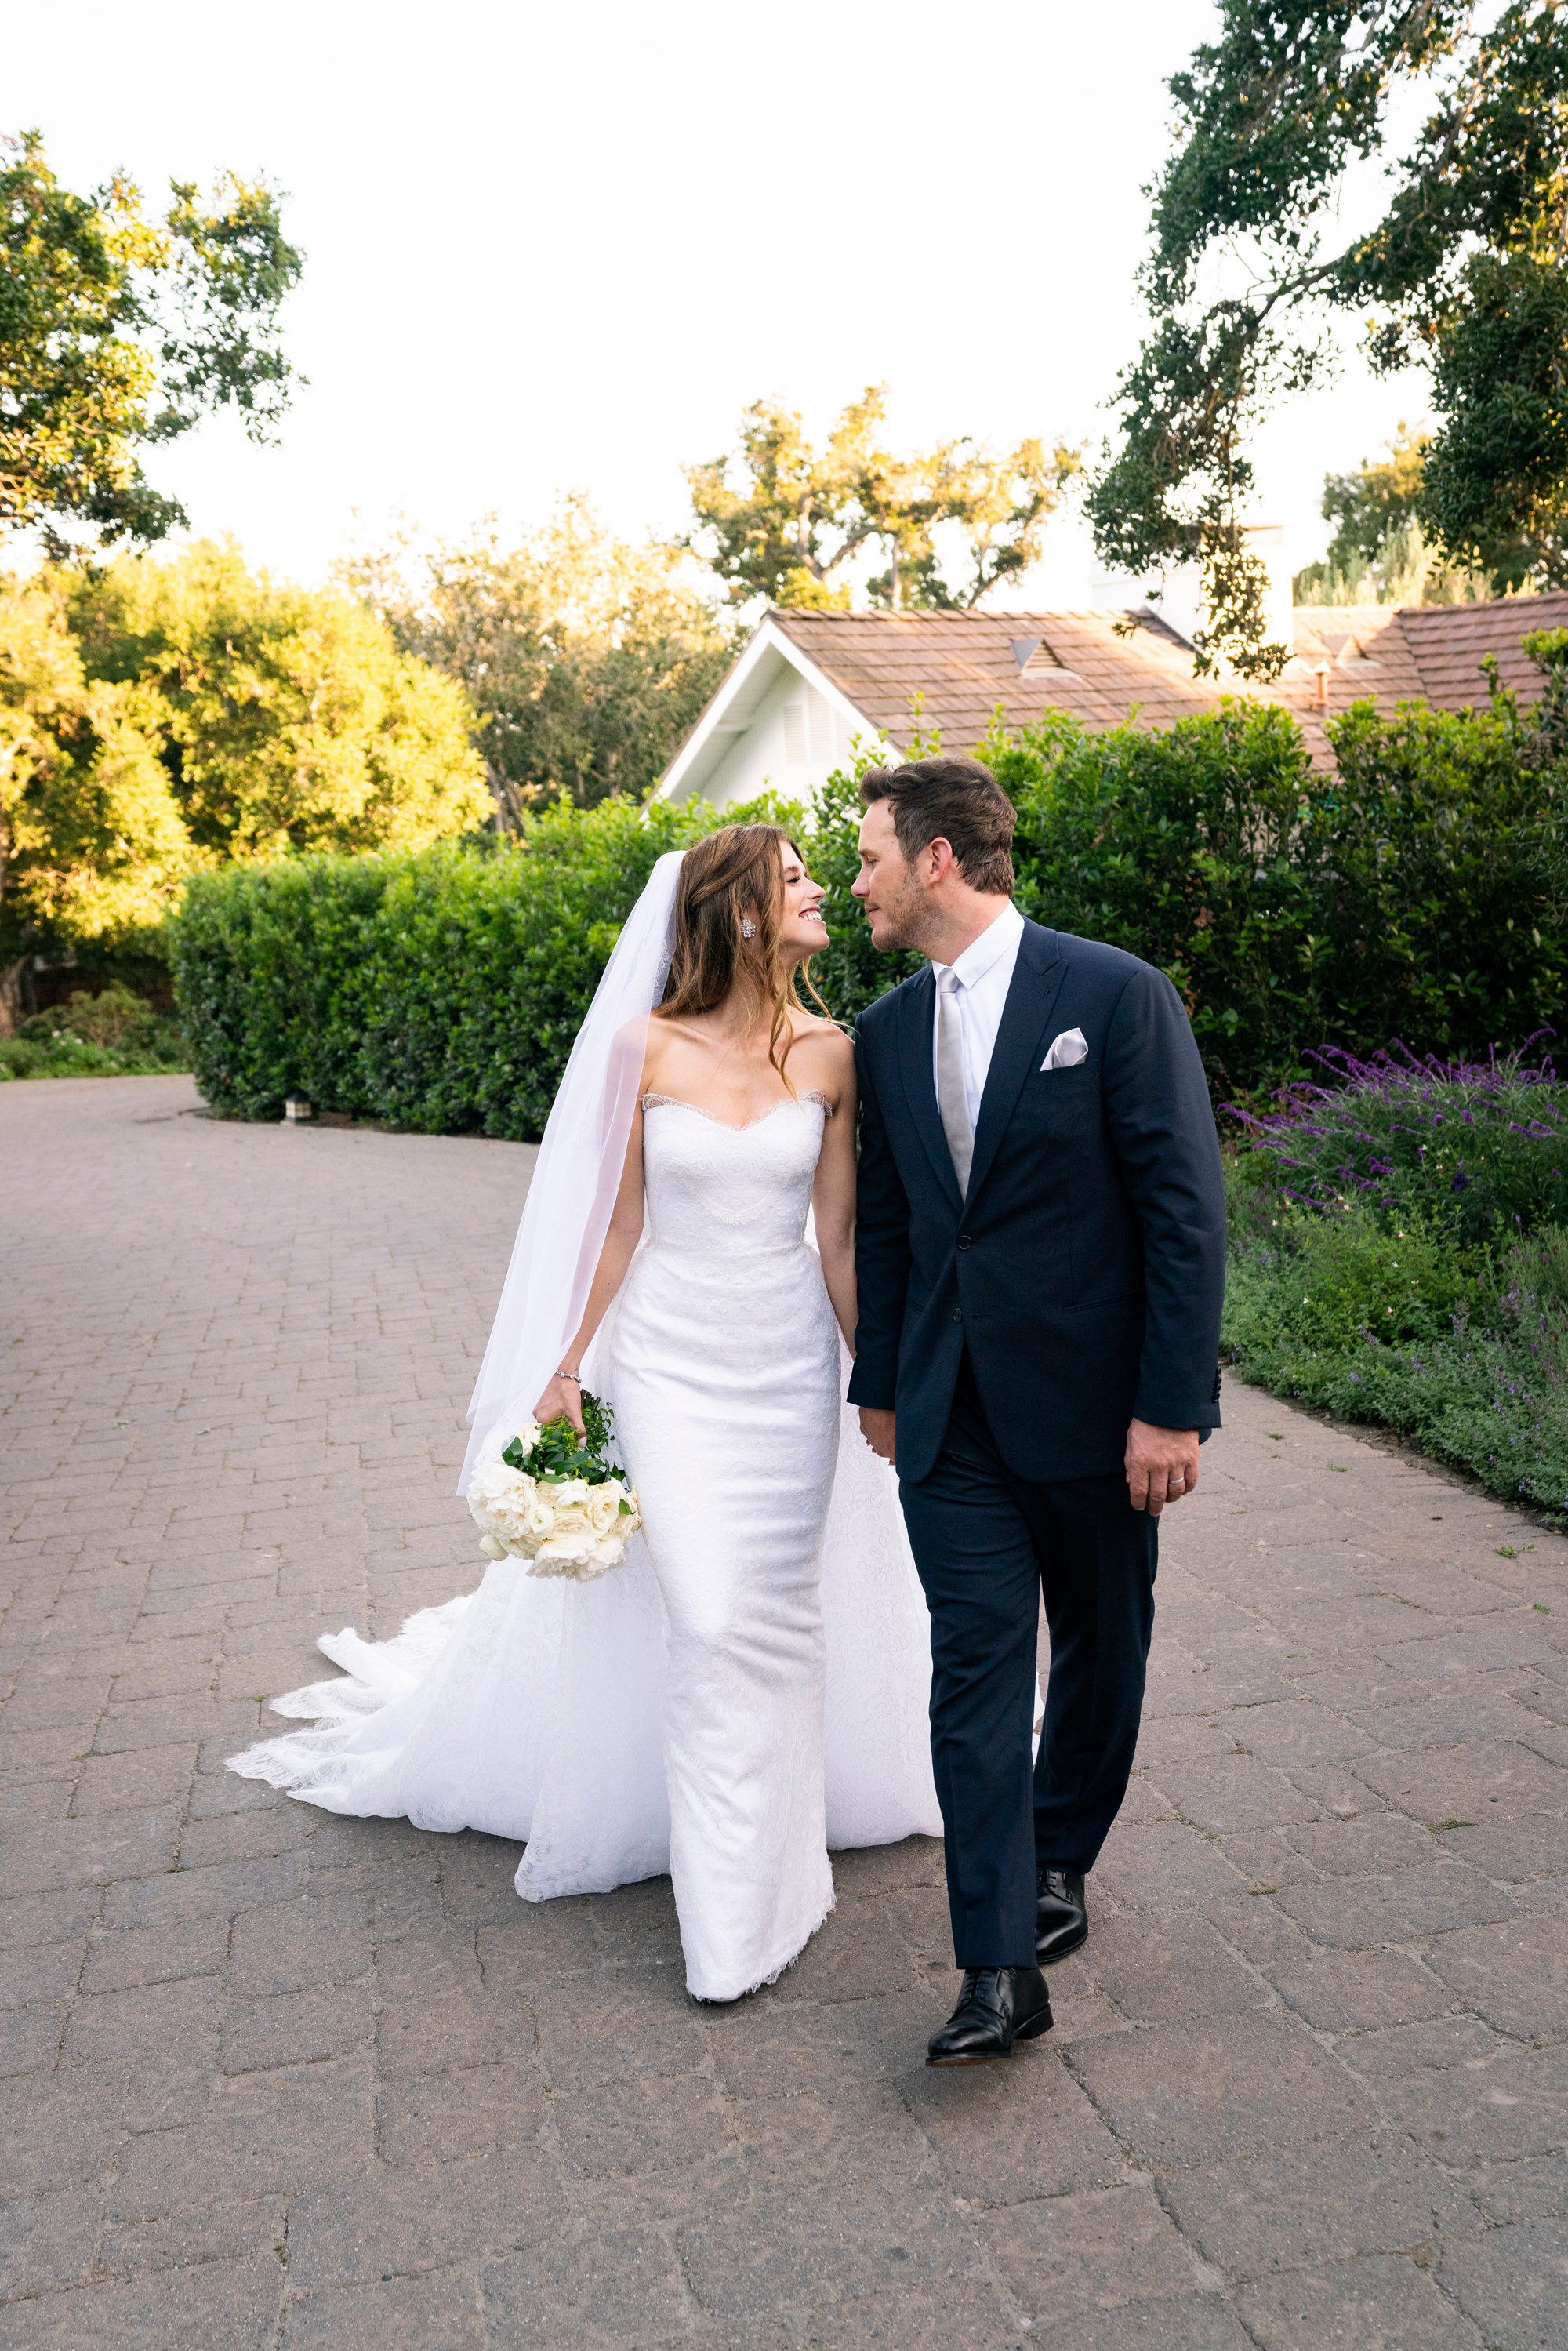 Katherine Schwarzenegger Had A Second Wedding Dress For